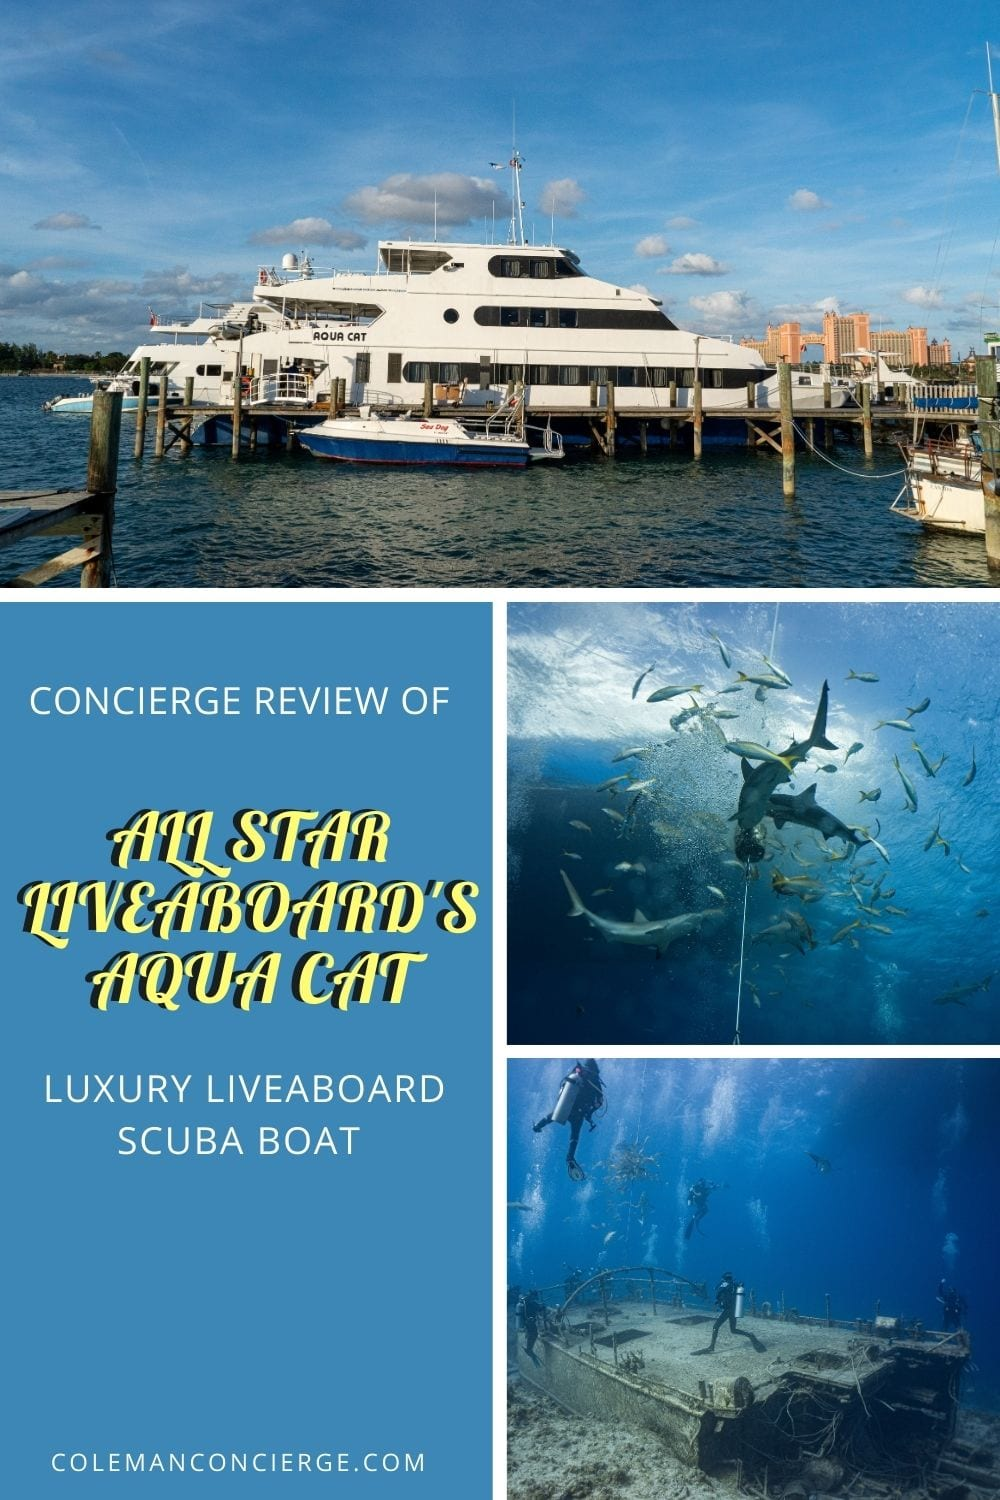 Image od Aqua Cat dive boat and 2 images of scuba diving in the Bahamas